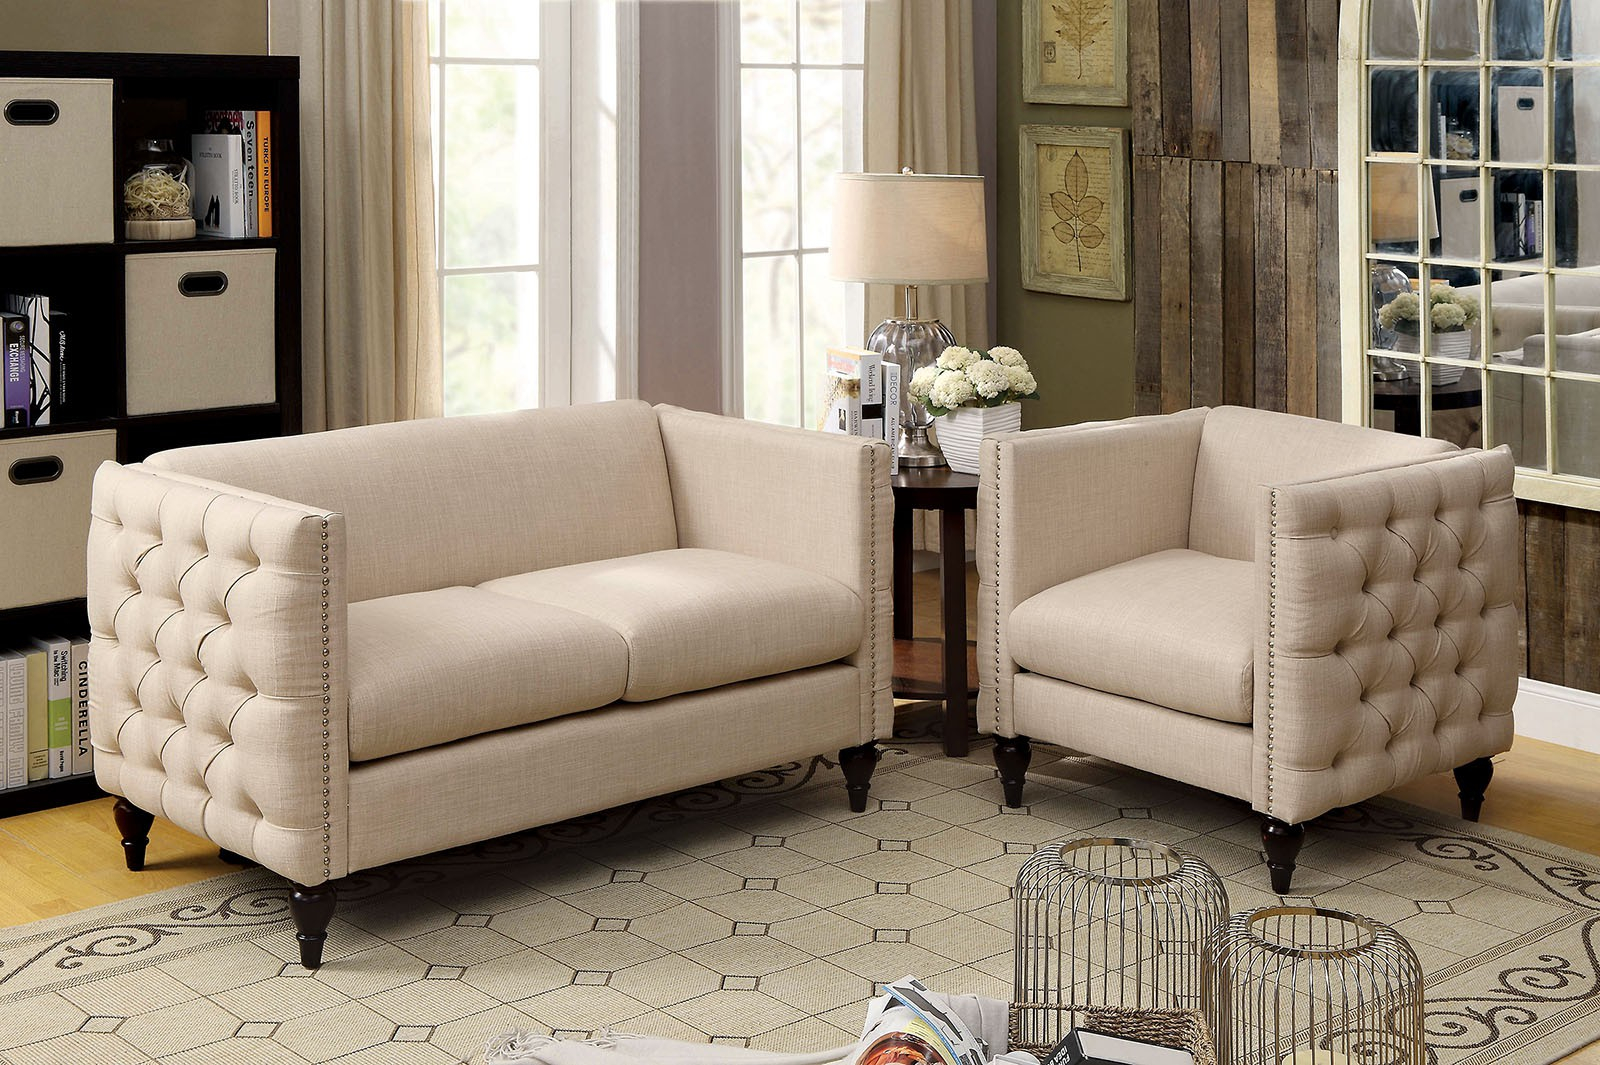 Emer Beige Linen Fabric Loveseat Chair Set W Deep Button Tufting throughout 12 Smart Ideas How to Build Chair Set Living Room